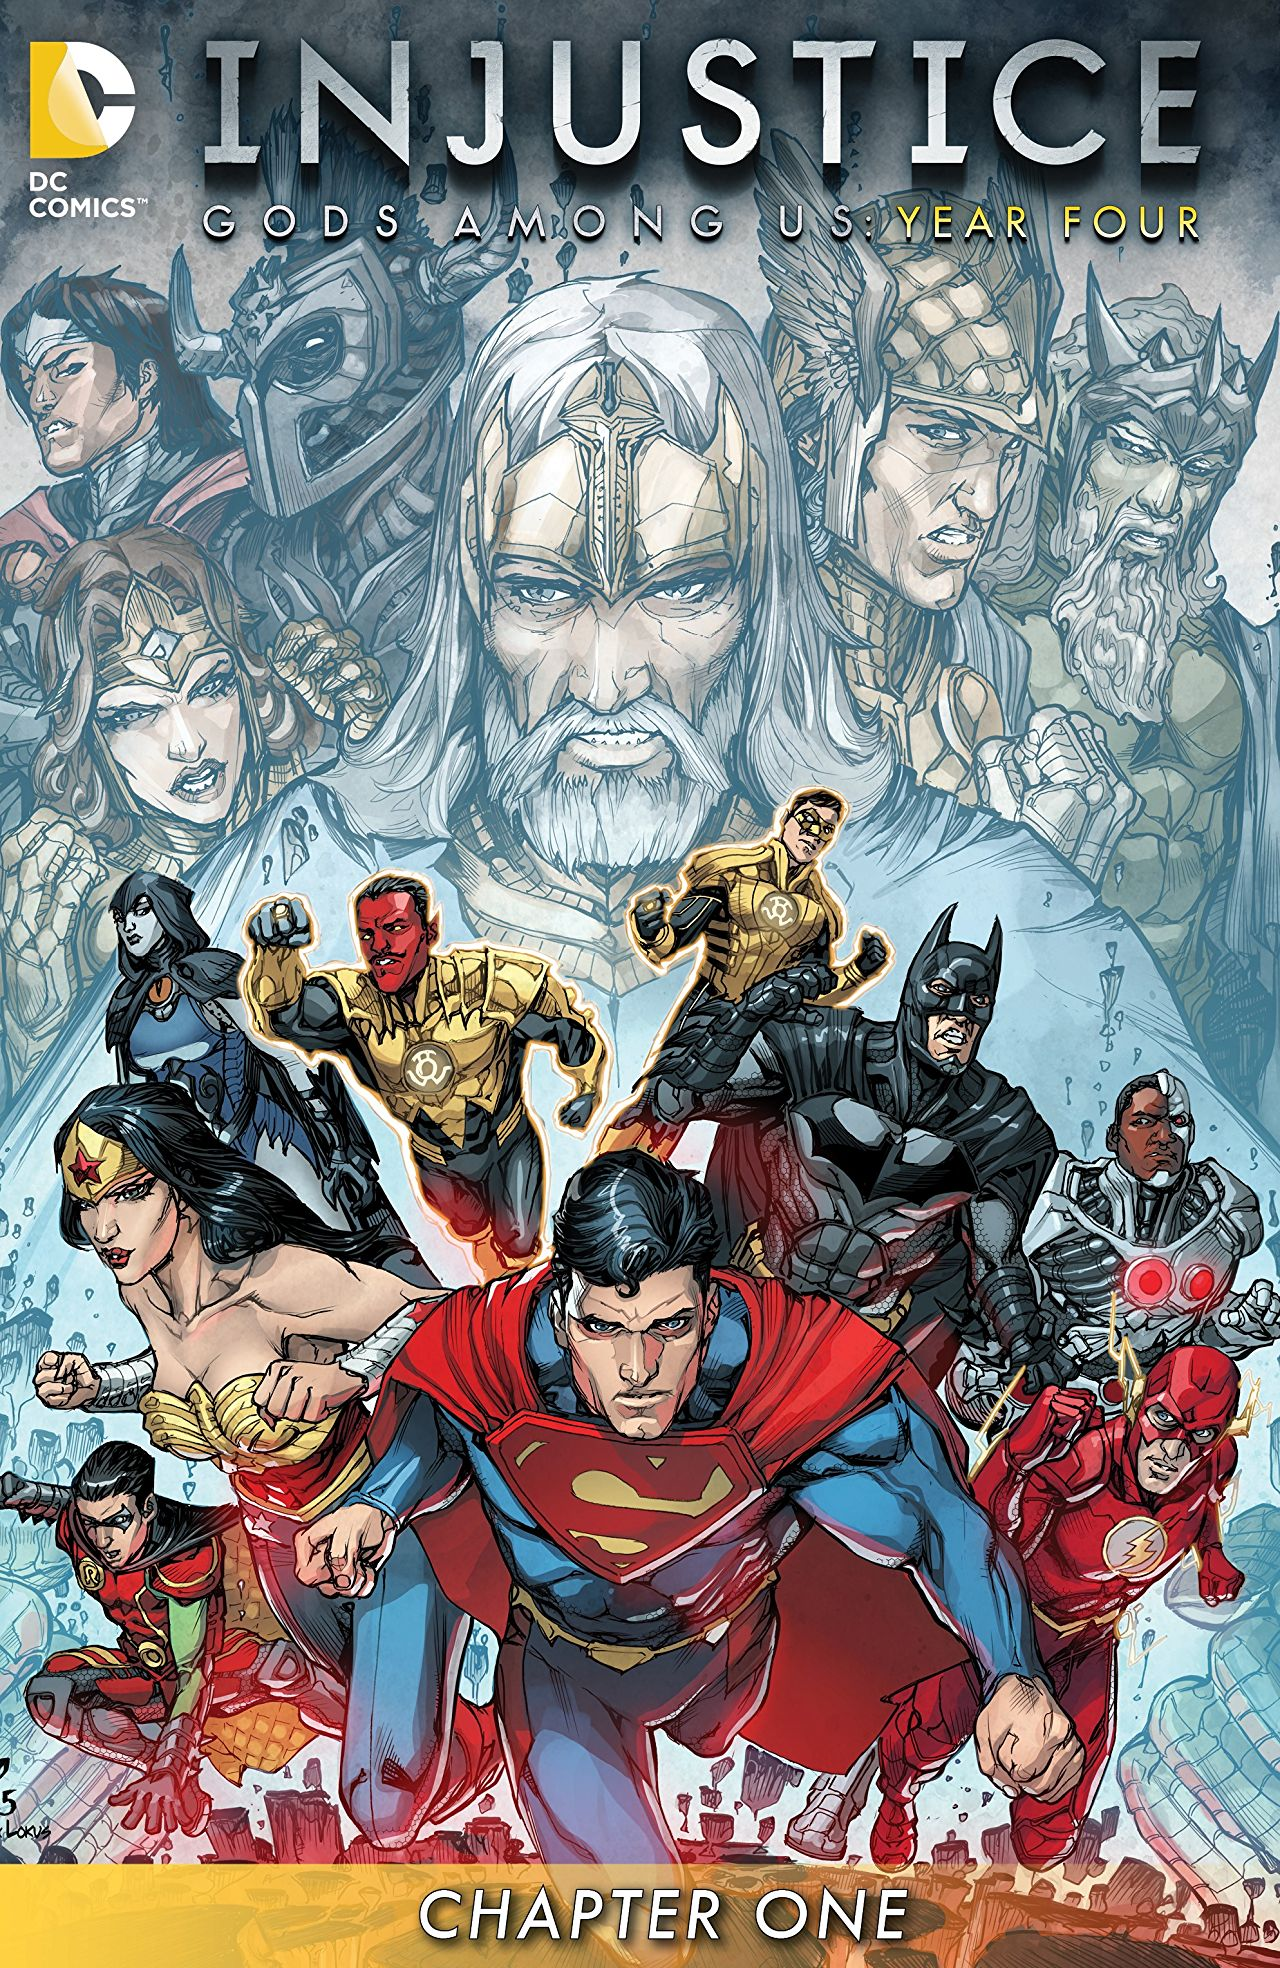 Injustice: Gods Among Us: Year Four Vol 1 1 (Digital)